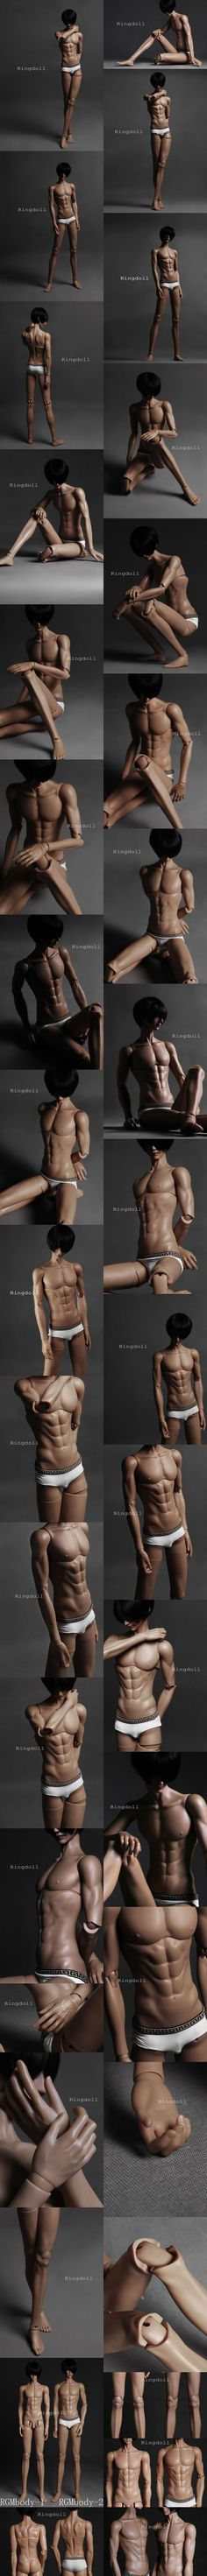 BJD 72cm Male Body RGMbody-2 Ball-jointed doll_RING DOLL_DOll body maker_DOLL BODY_Ball Jointed Dolls (BJD) company-Legenddoll